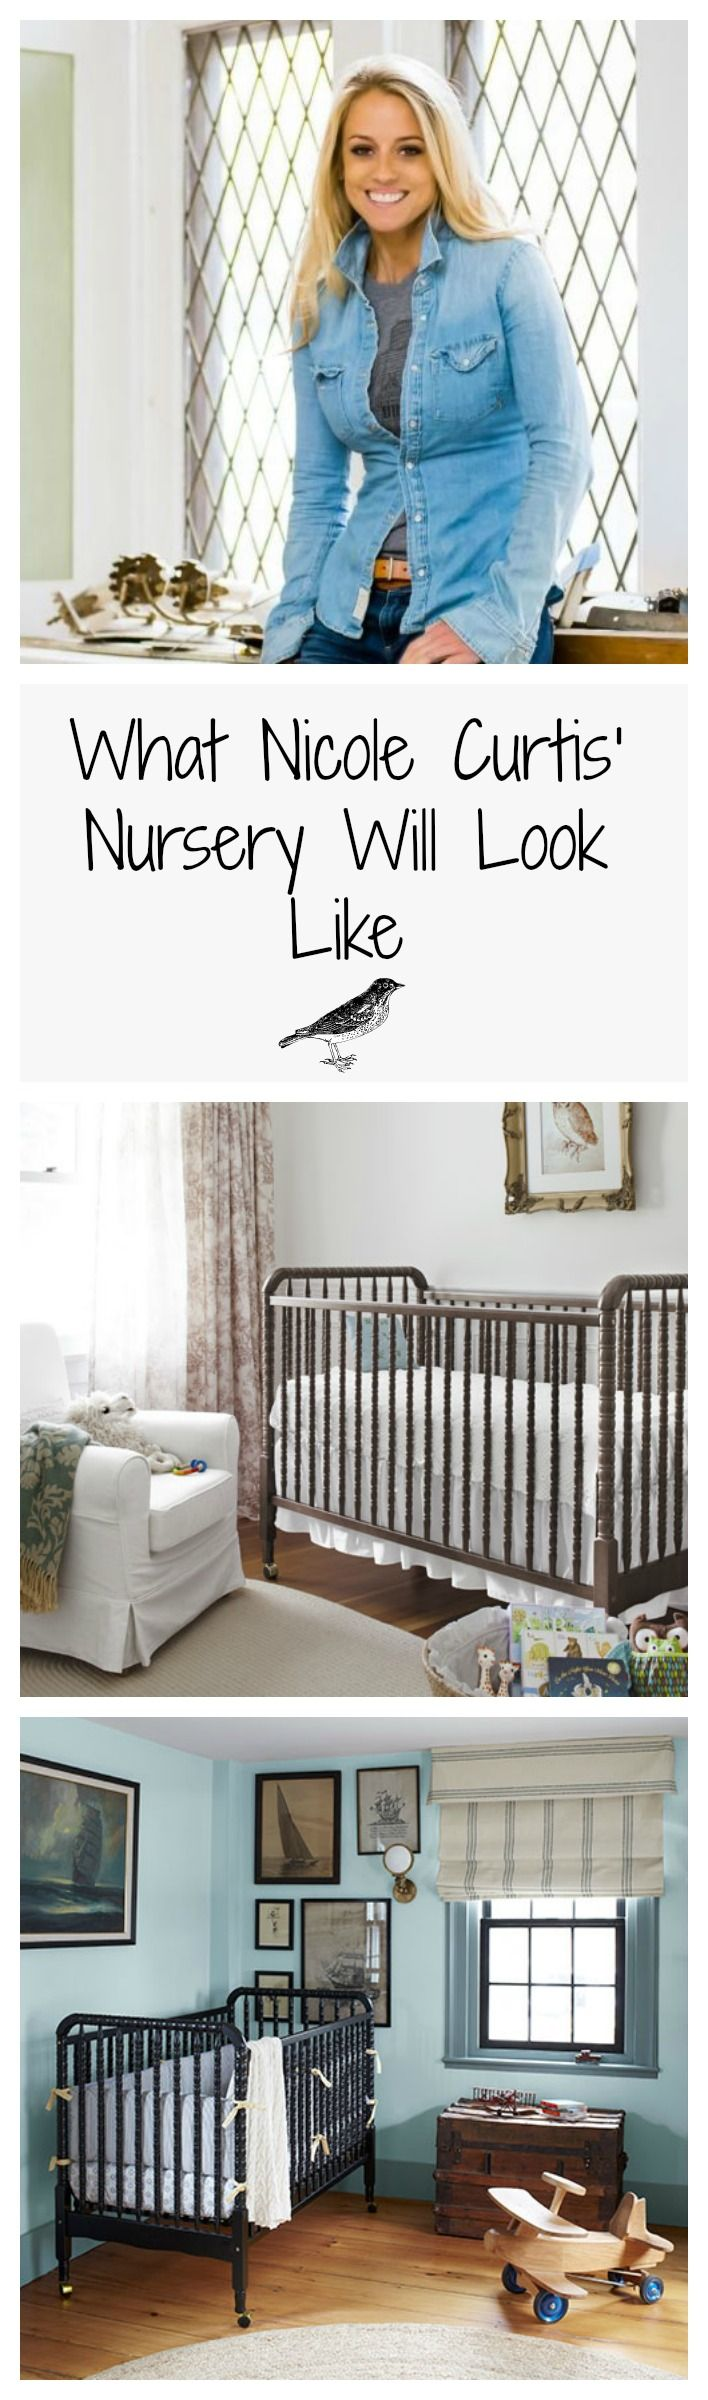 Let the nesting begin for HGTV star, Nicole Curtis! Repurposed and upcycled items will definitely come into play in this nursery.